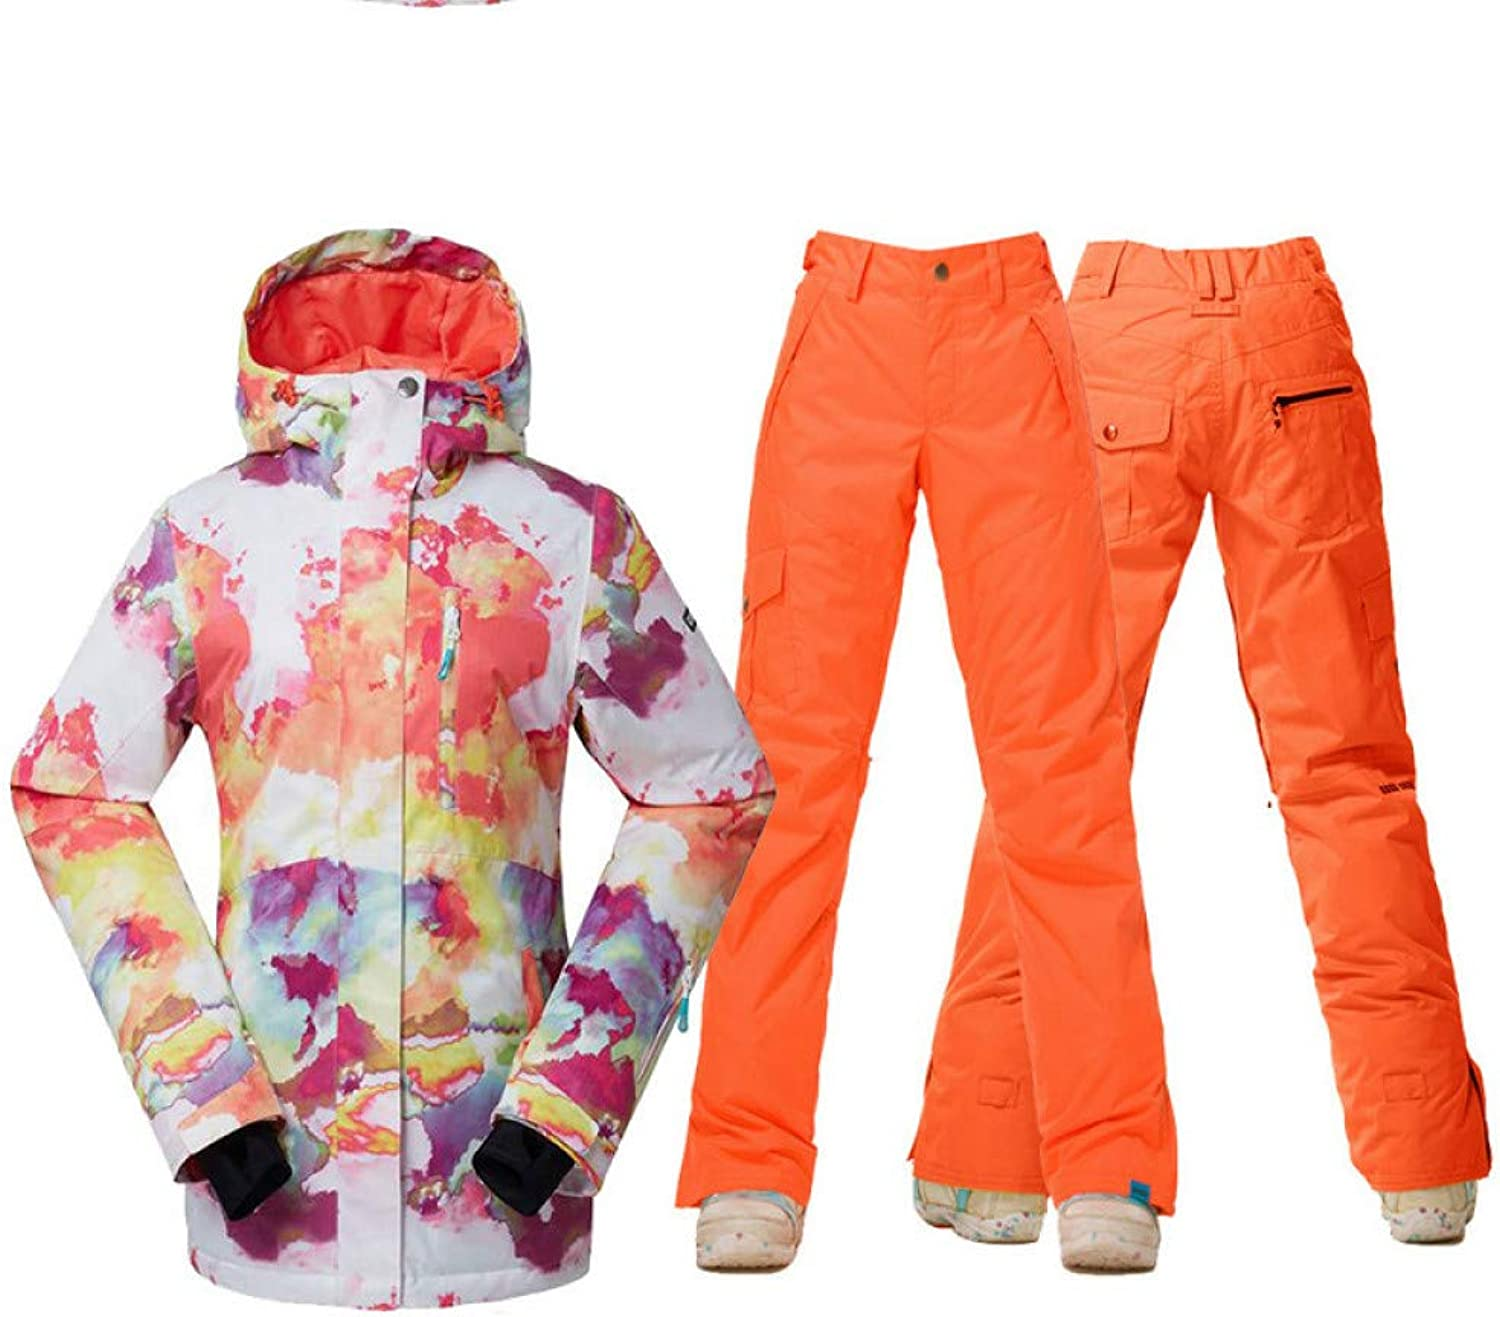 Zjsjacket ski Suit Women Snow Jackets and Pants Snowboarding Clothing Outdoor Sports Skiing Suit Sets Waterproof Windproof High Quality